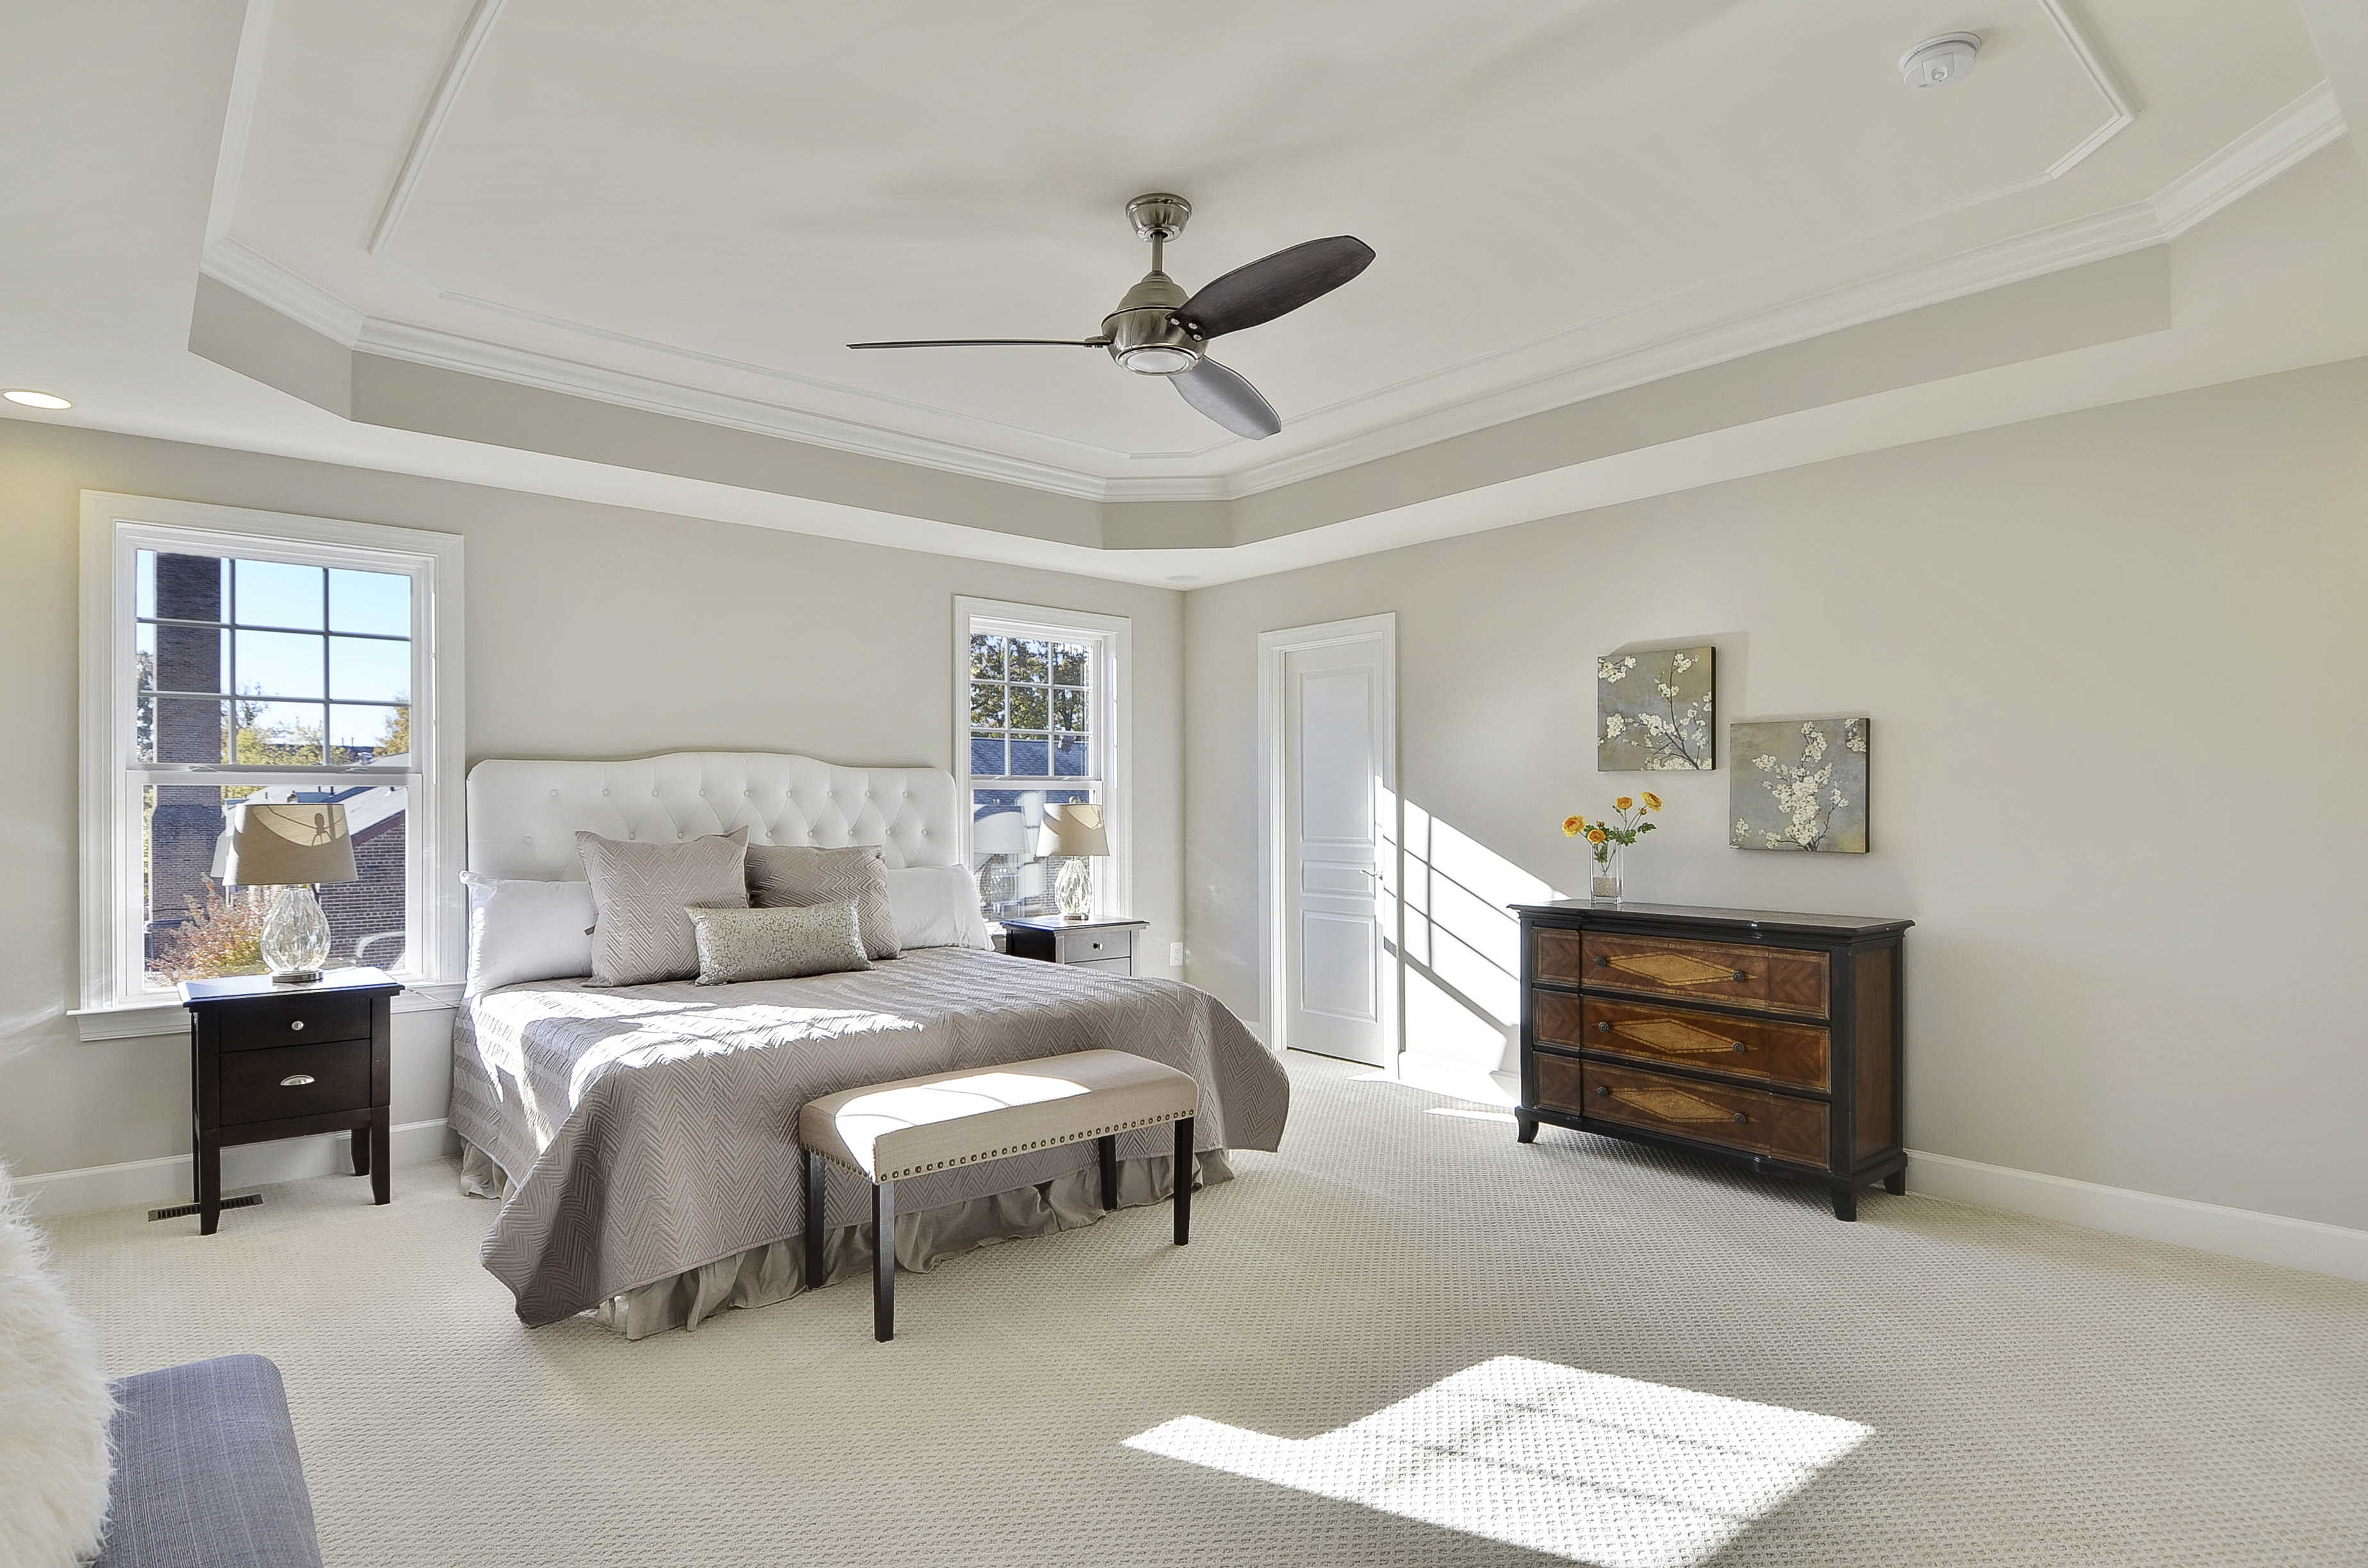 Boxed Tray Ceiling & Fan